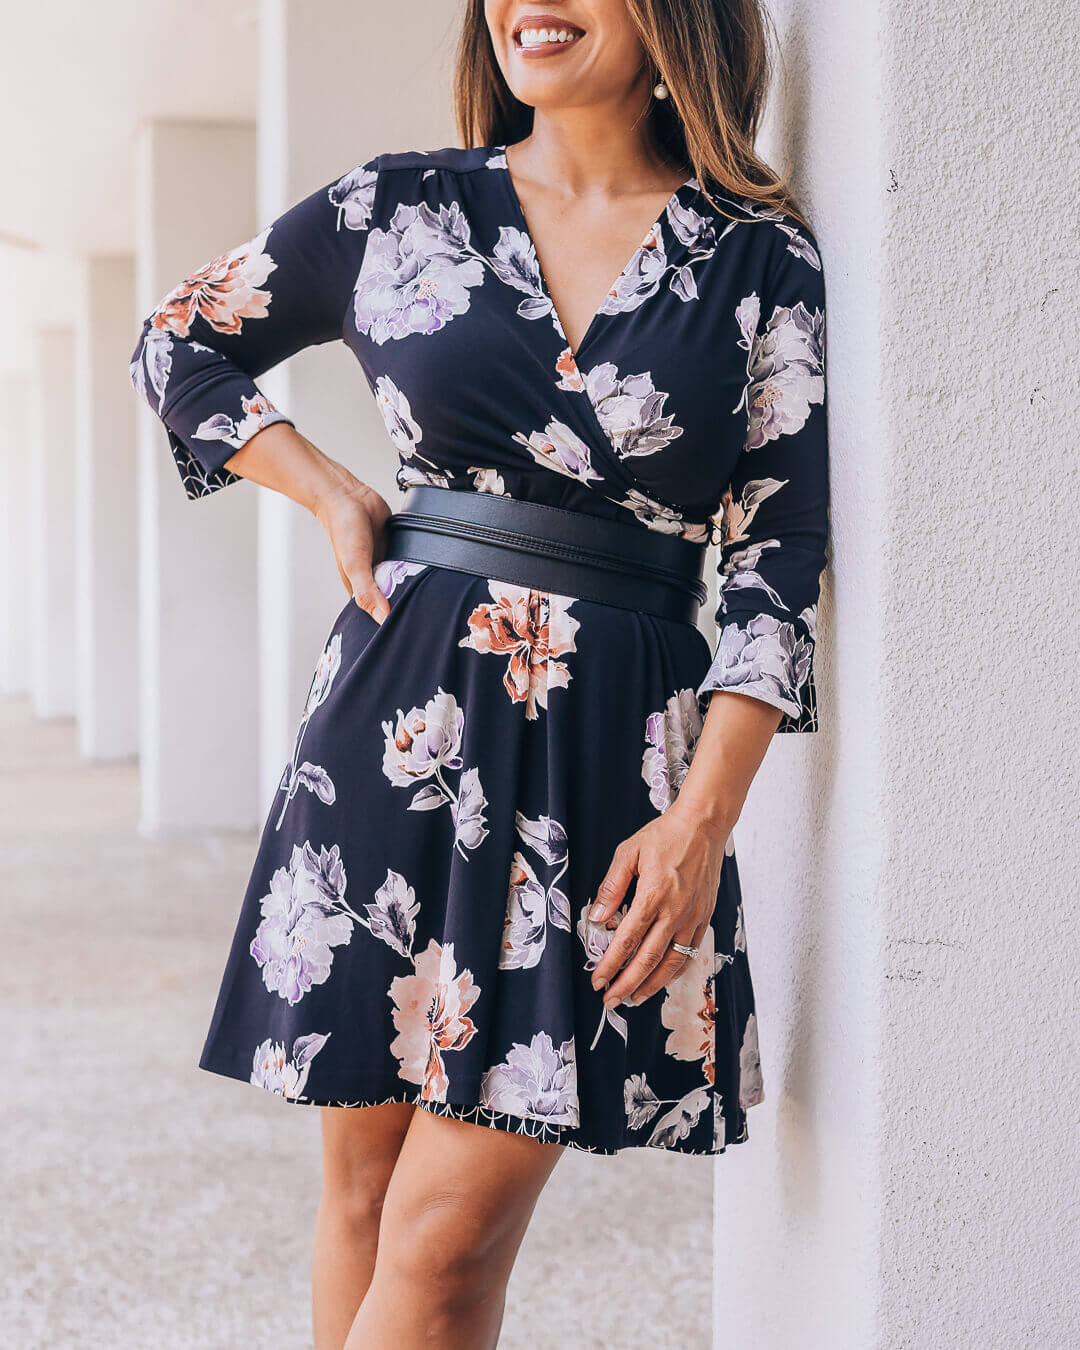 @whbm, #WHBM, White House Black Market, White House Black Market new arrival, White House Black Market review, WHBM fall, WHBM fall styles, WHBM fall preview, WHBM fall 2019, WHBM sale, WHBM shoes, WHBM dresses, WHBM jewelry, WHBM store, WHBM petite, WHBM plus size